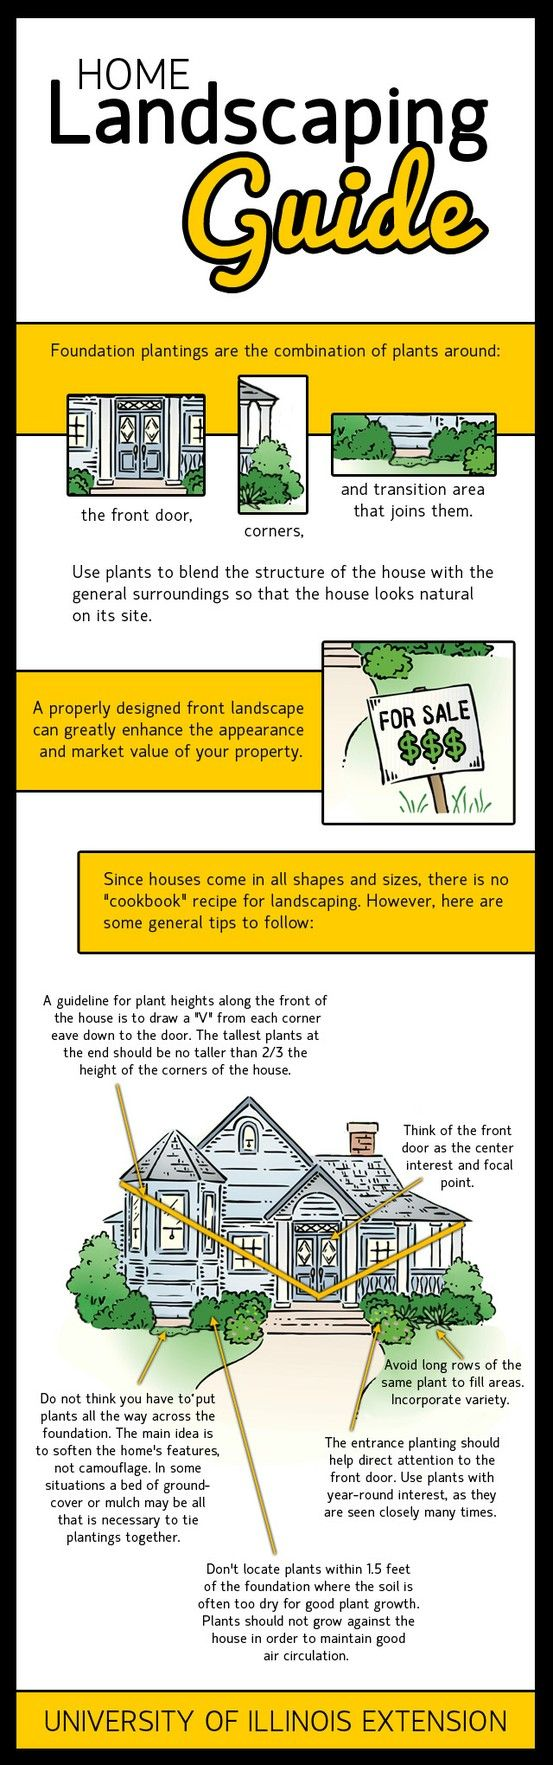 A useful home landscaping guide – what plants to use where around your home's foundation.